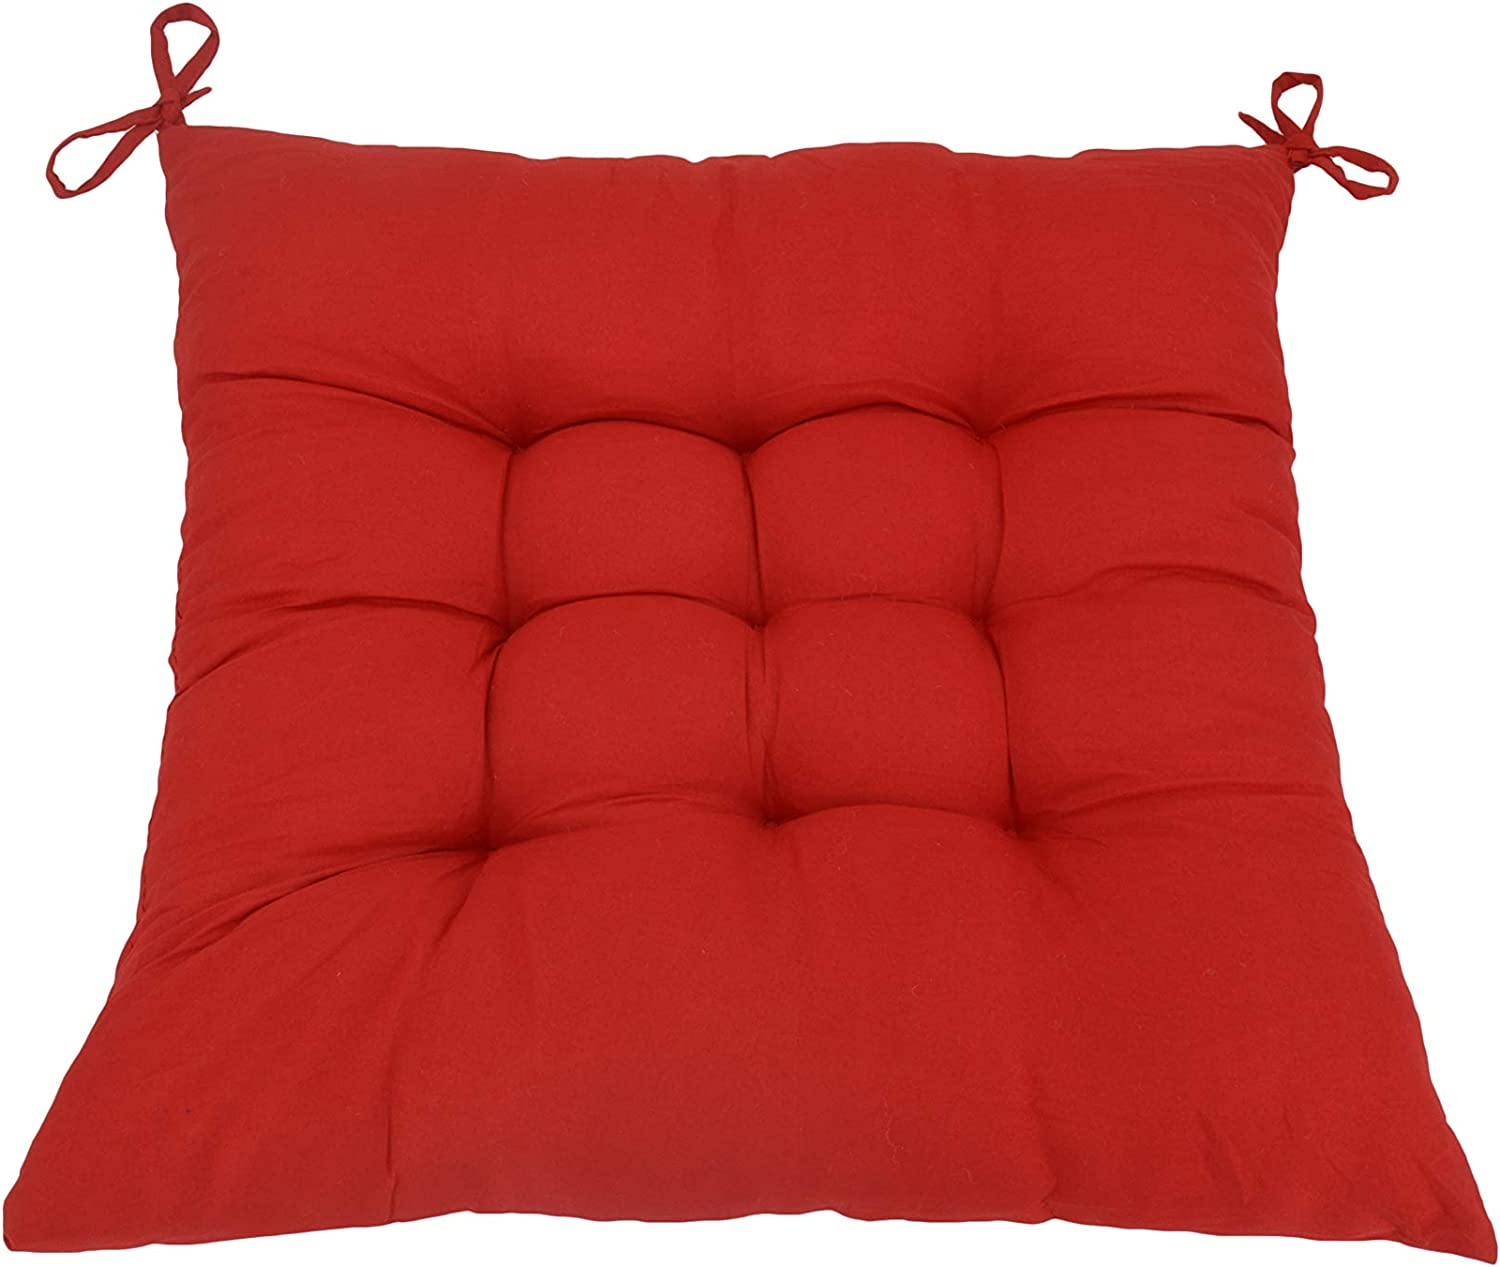 """Red ELFJOY Set of 4 Solid Square 16/"""" x 16/"""" Tufted Chair Pads Indoor Seat Cushions Pillows with Ties"""